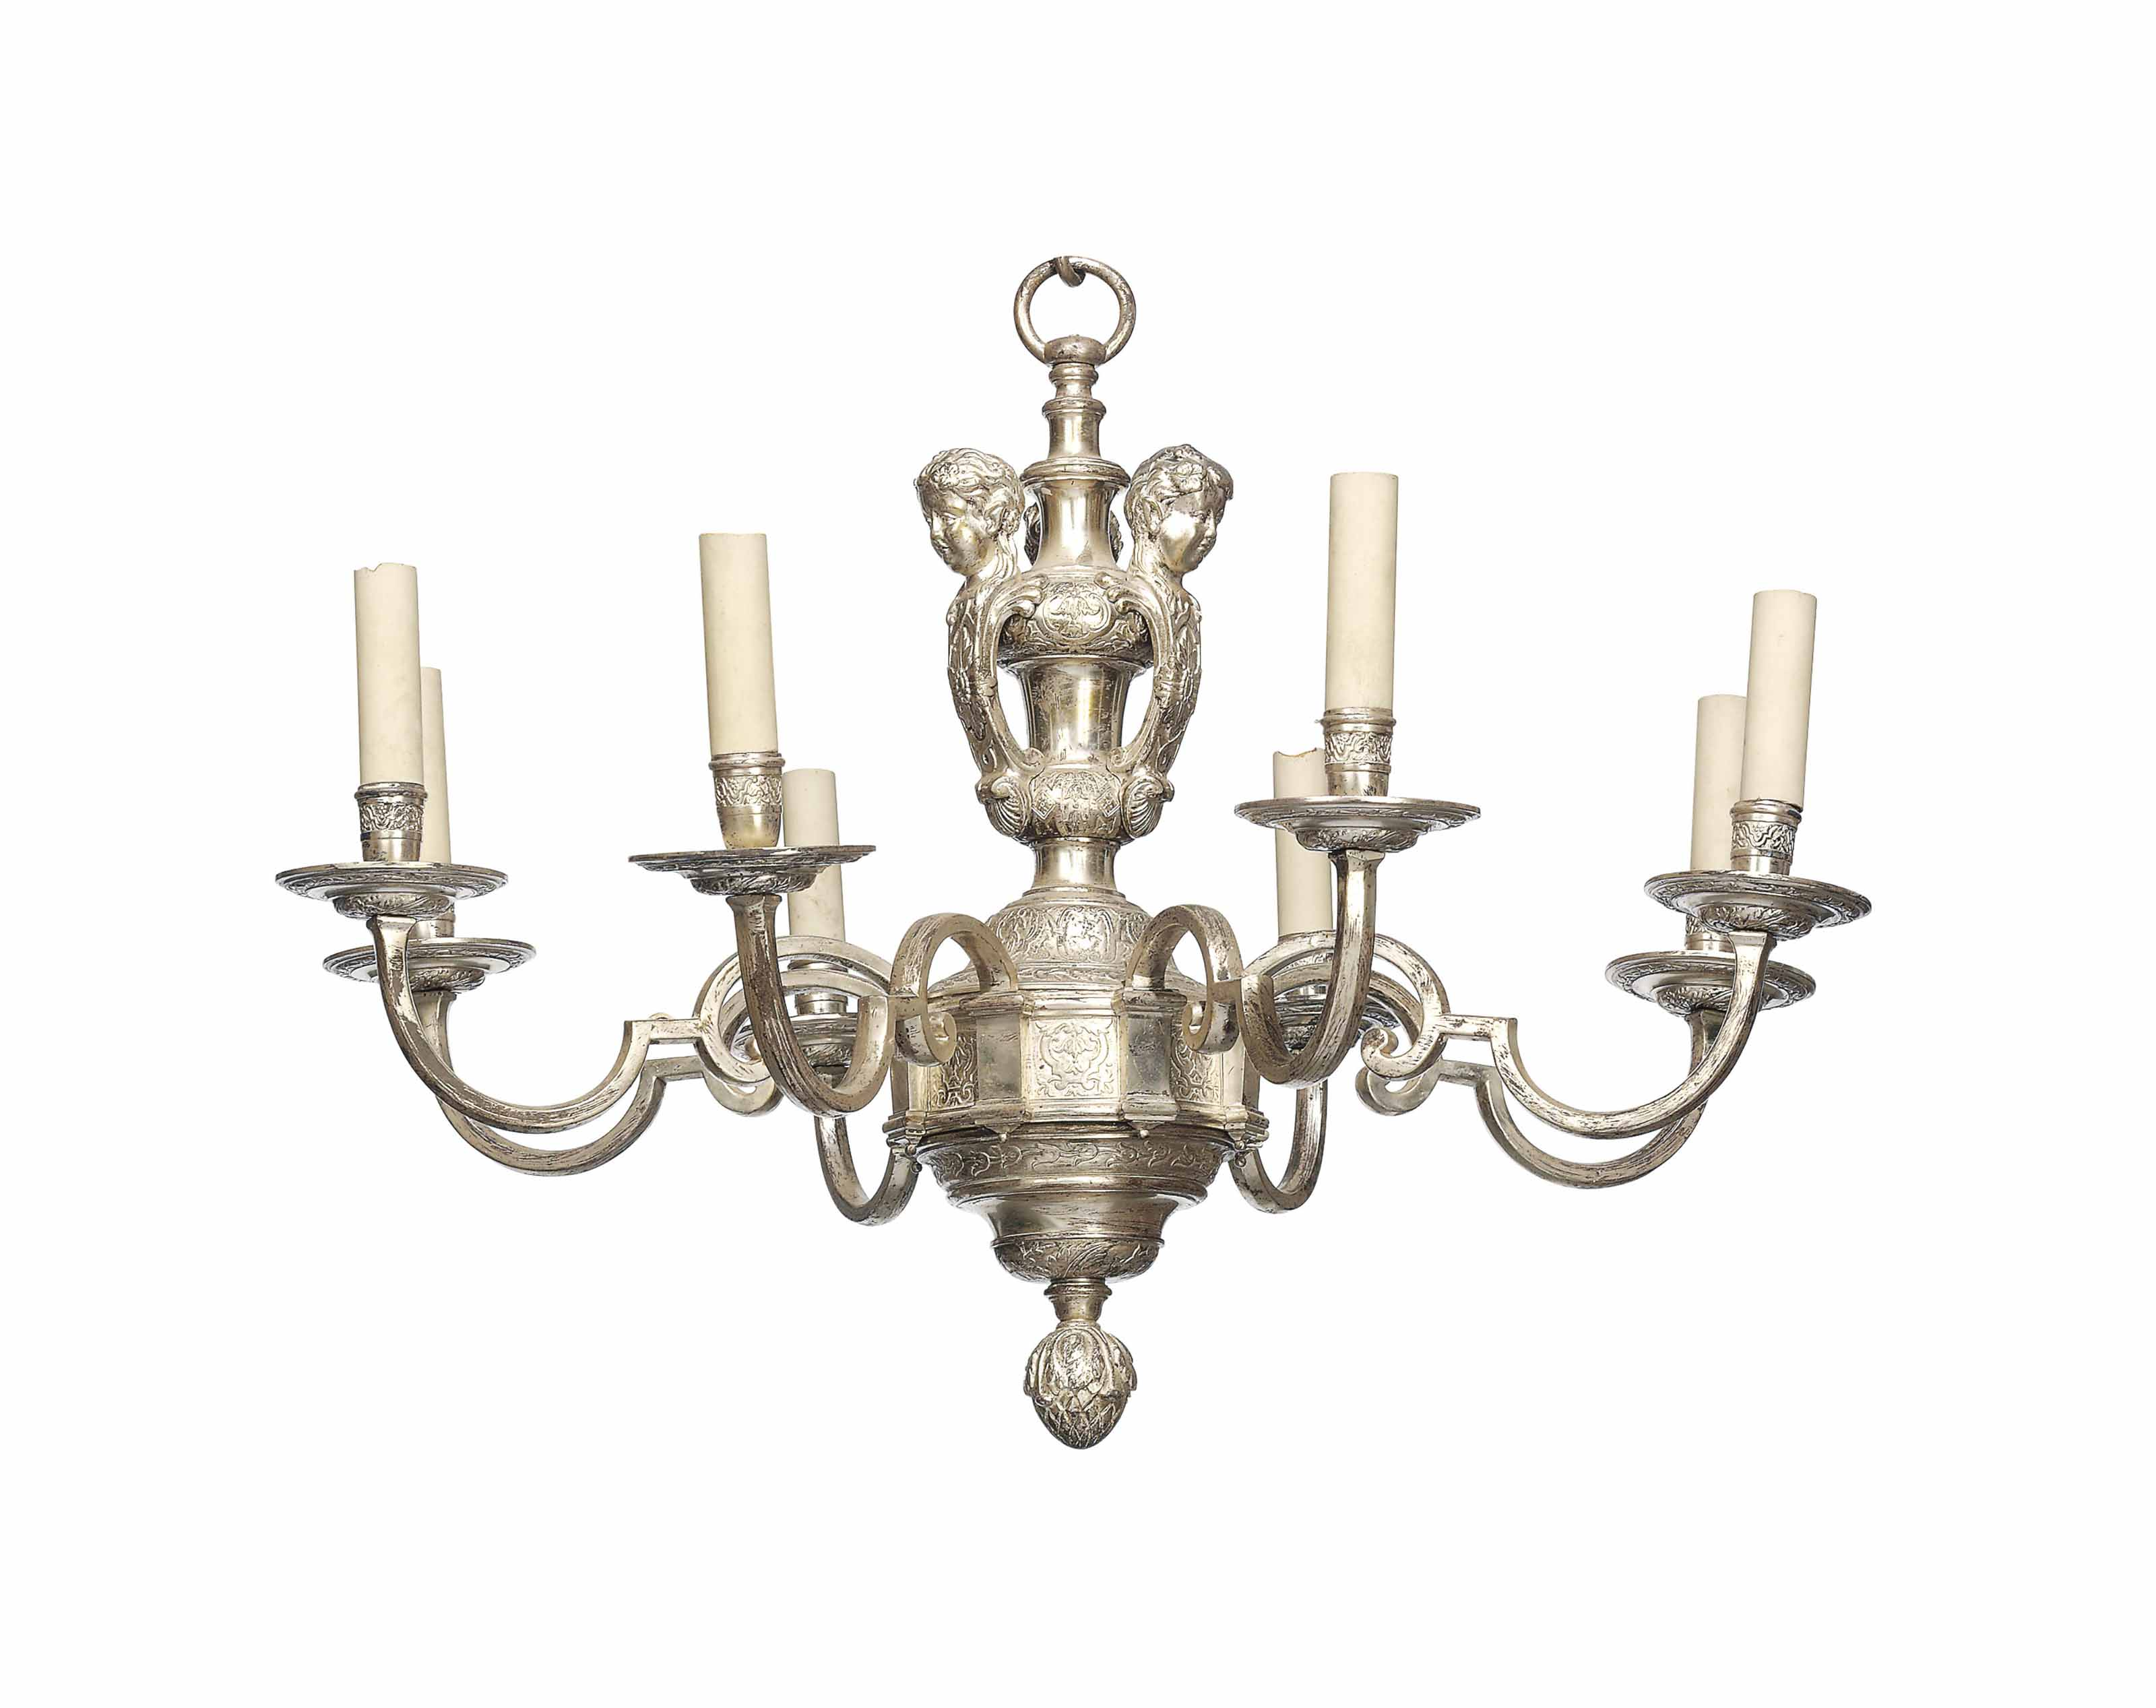 A CHARLES II SILVERED-BRONZE EIGHT-LIGHT CHANDELIER